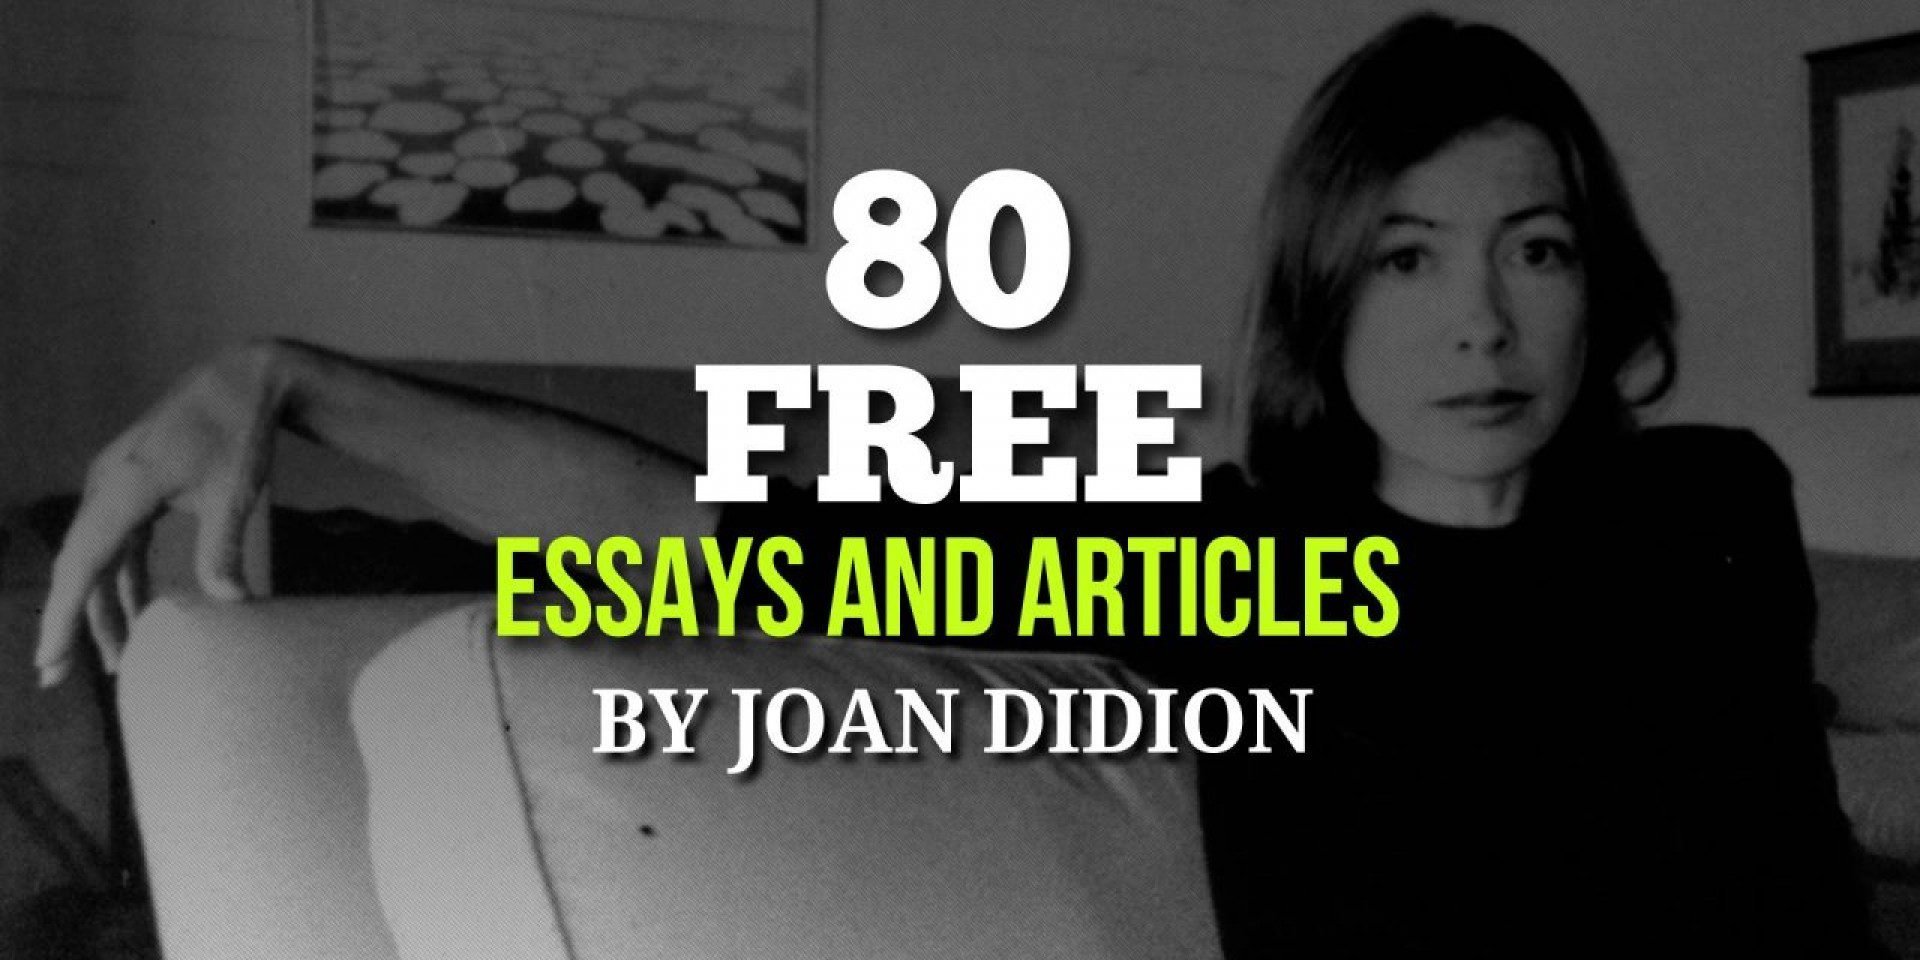 005 Joan Didion Essays Fi Joandidion 1280x640 Essay Singular On Santa Ana Winds Collections 1920